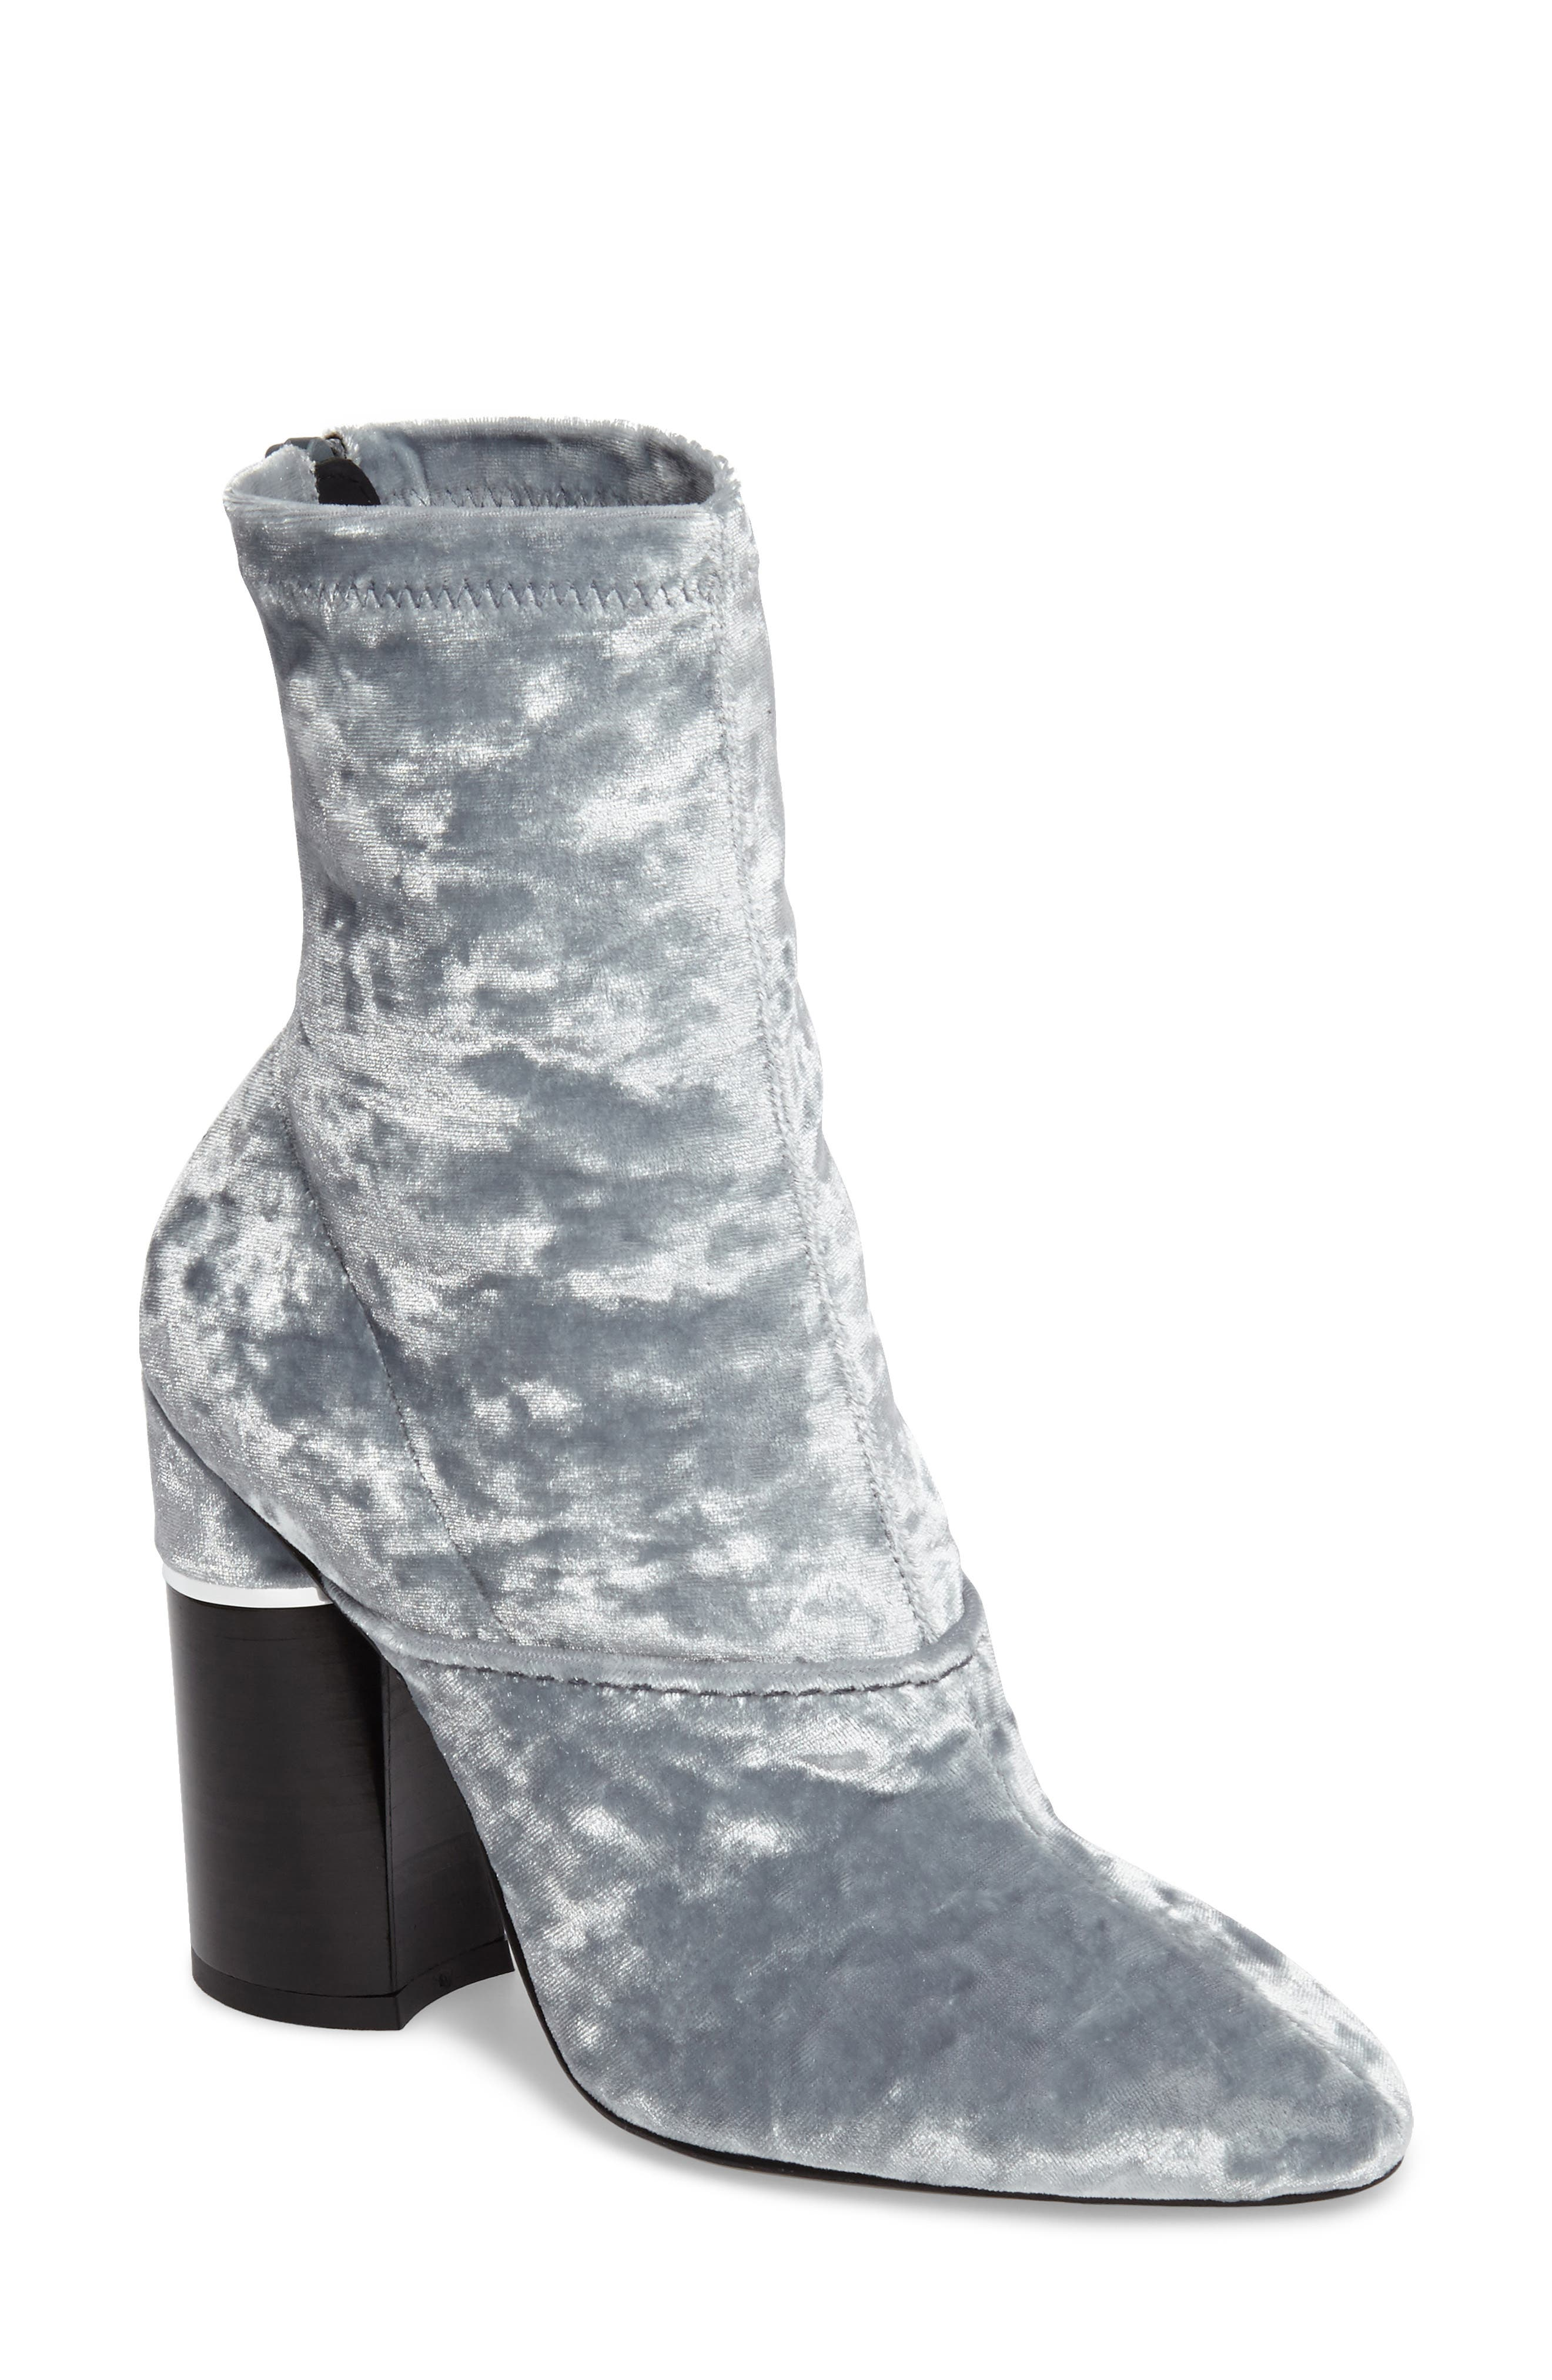 'Kyoto' Crushed Velvet Boot,                         Main,                         color, 020